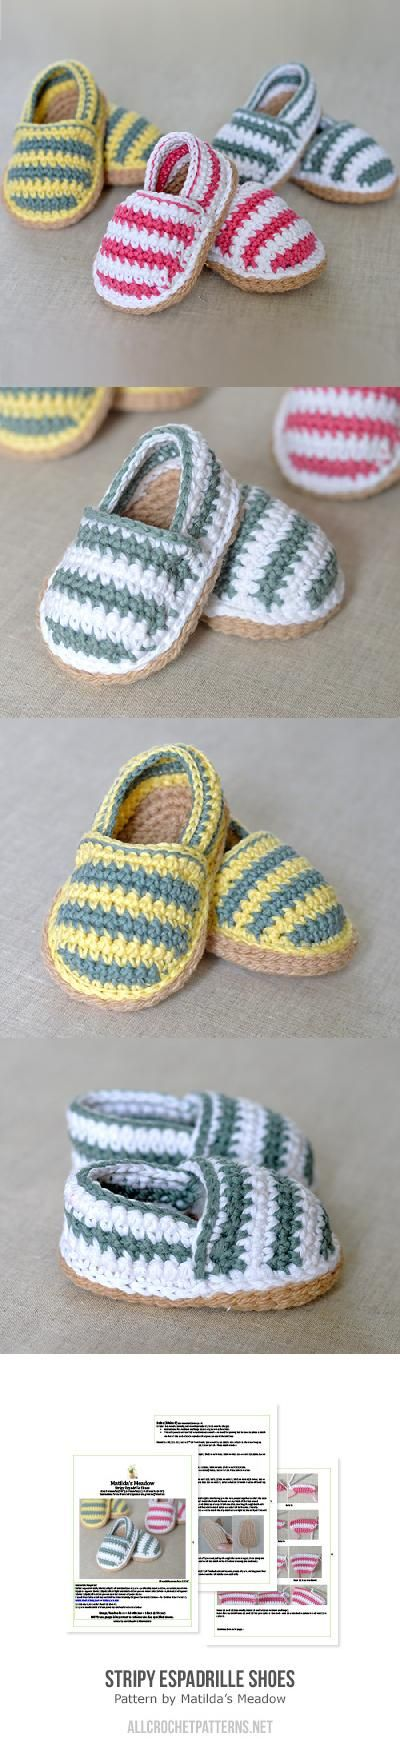 Stripy Espadrille Shoes Crochet Pattern ☂ᙓᖇᗴᔕᗩ ᖇᙓᔕ☂ᙓᘐᘎᓮ…